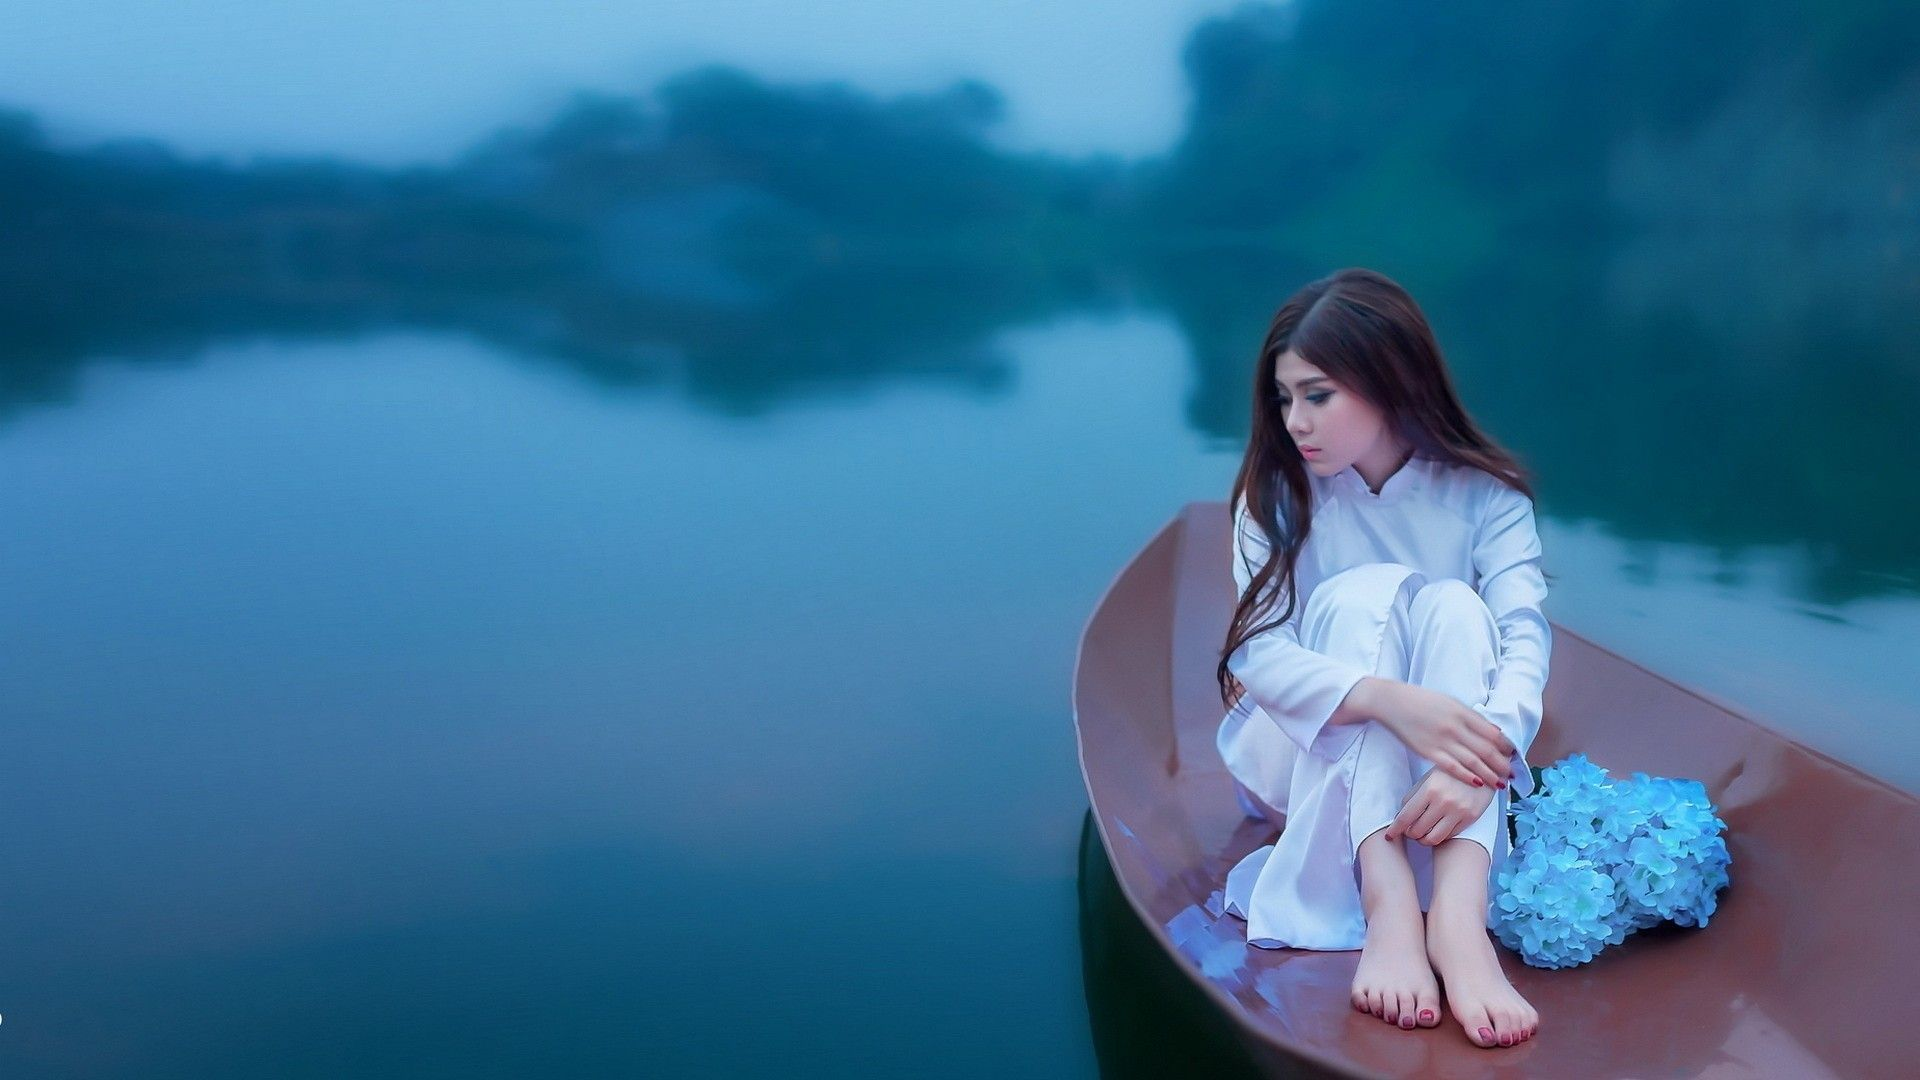 Japanese Girl Boat Lake 1920x1080 1080p Wallpaper Hd